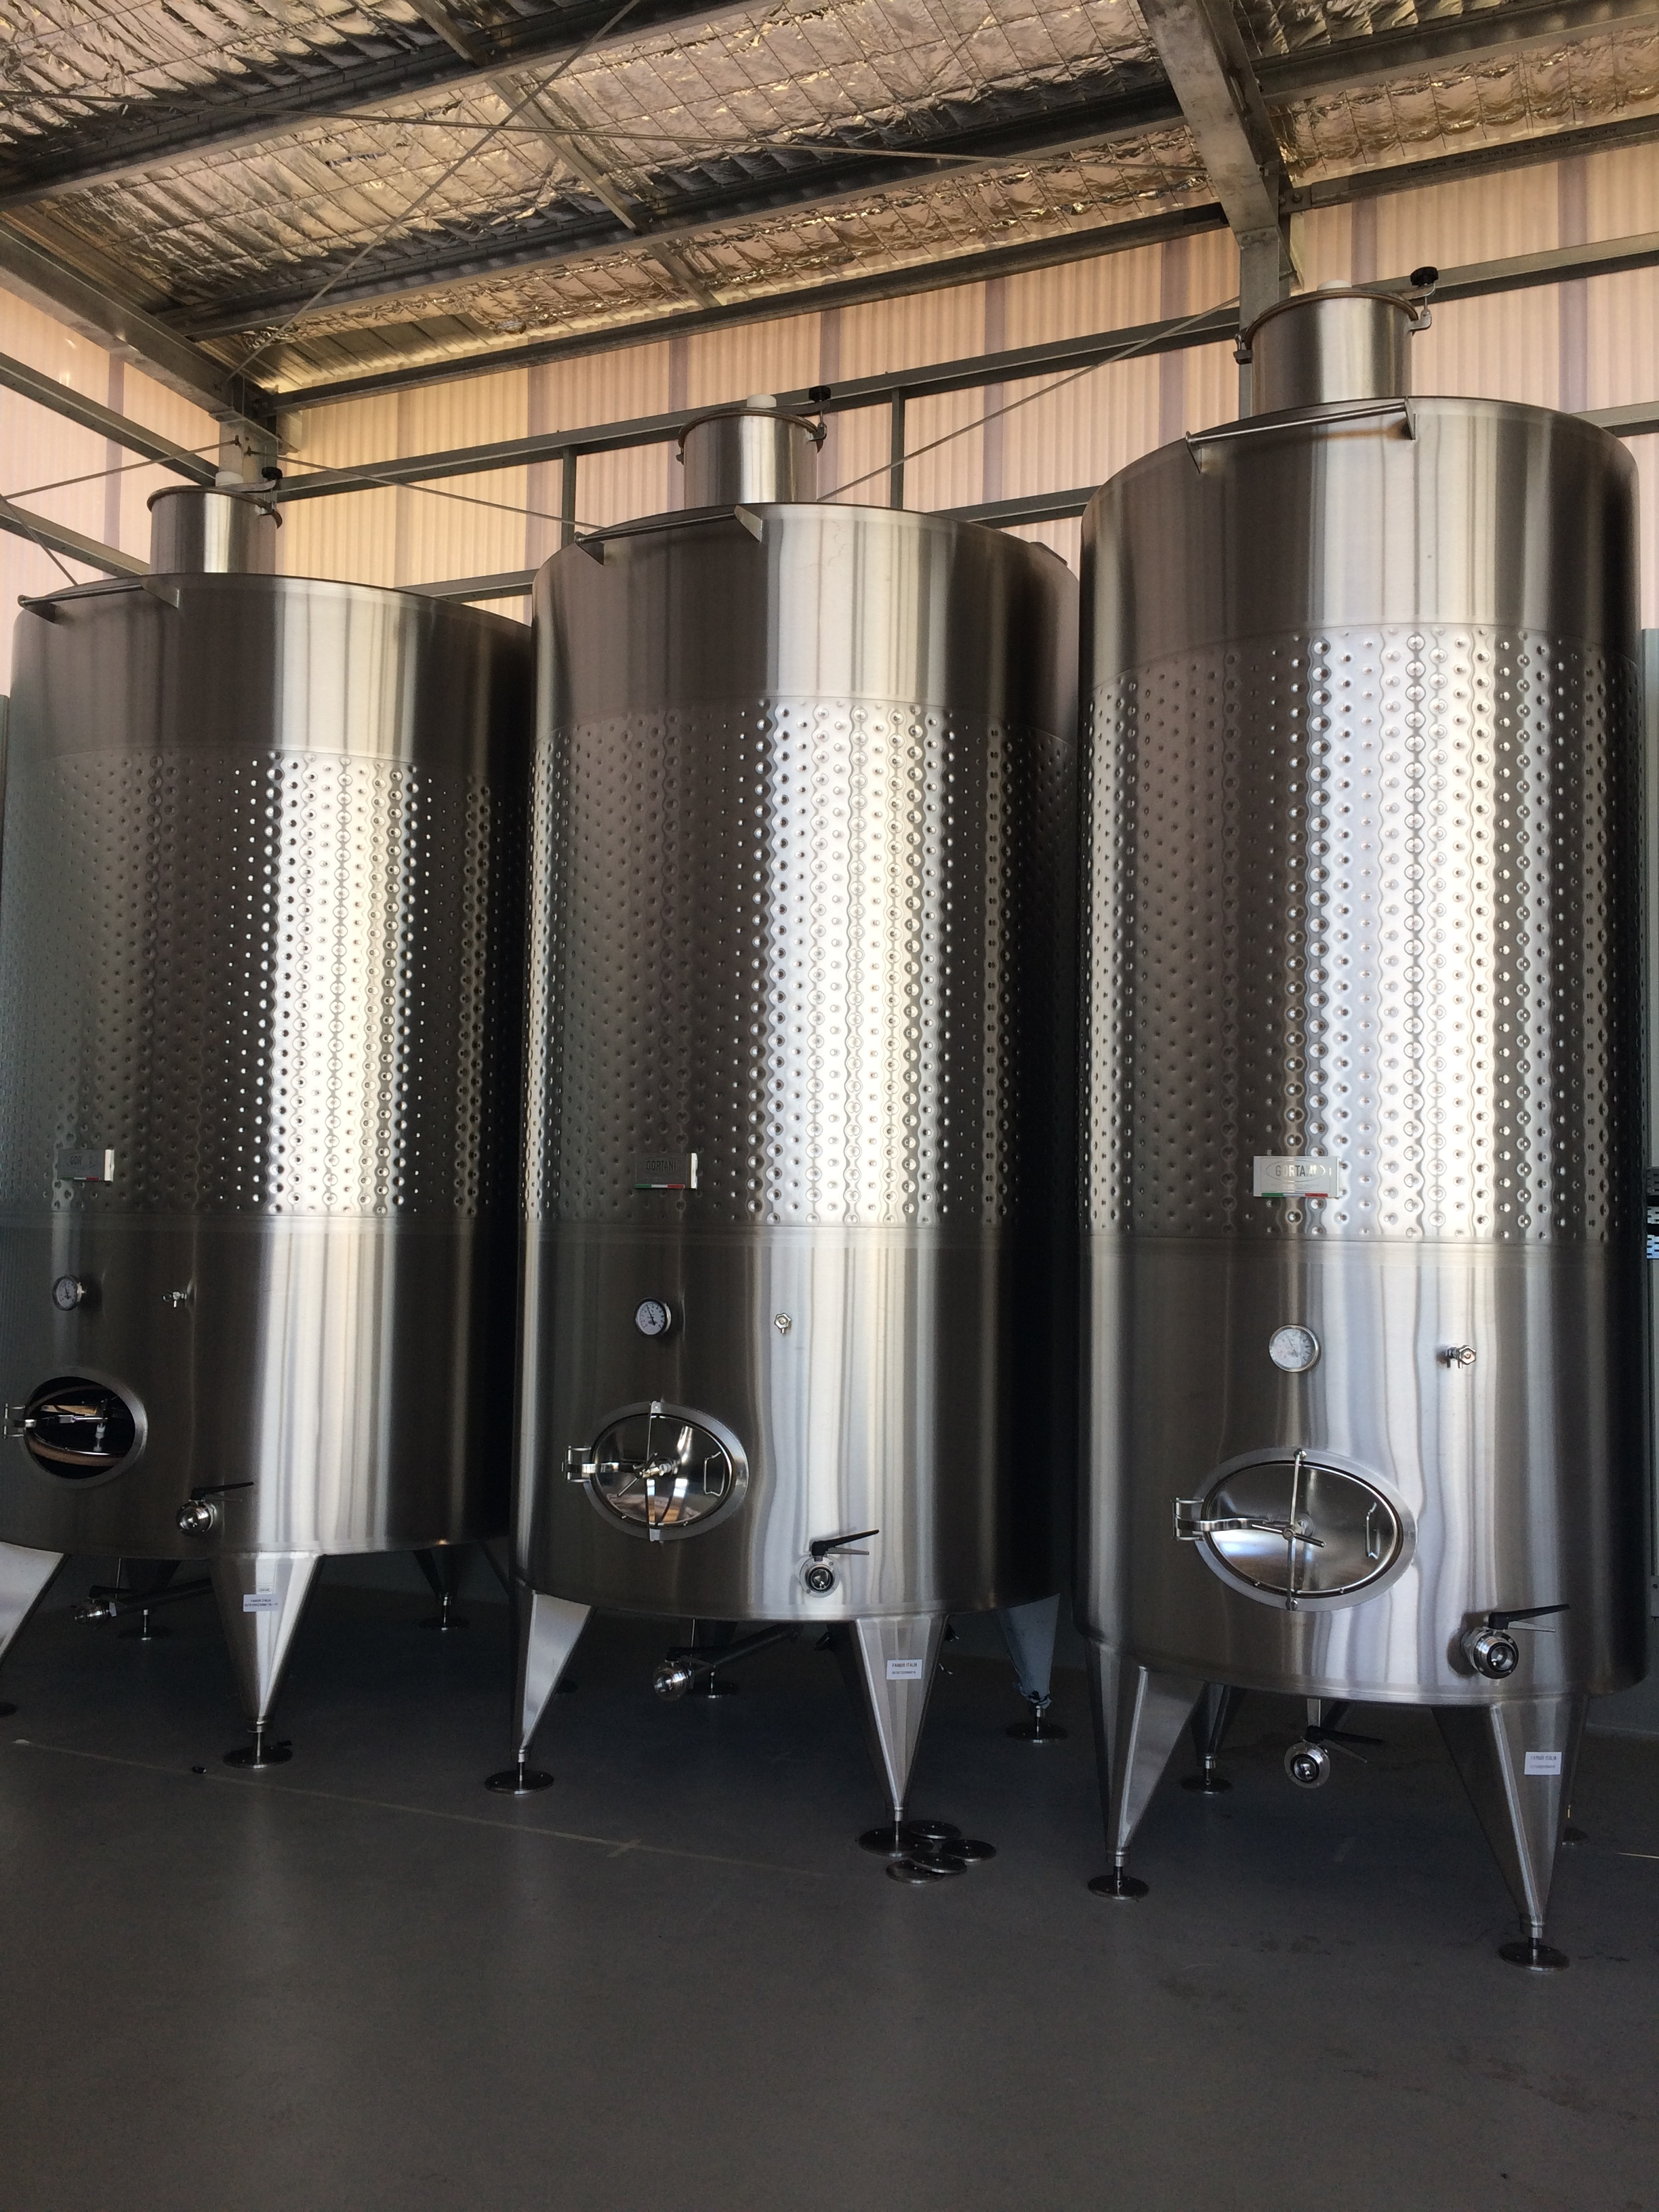 Sexy, shiny tanks in place